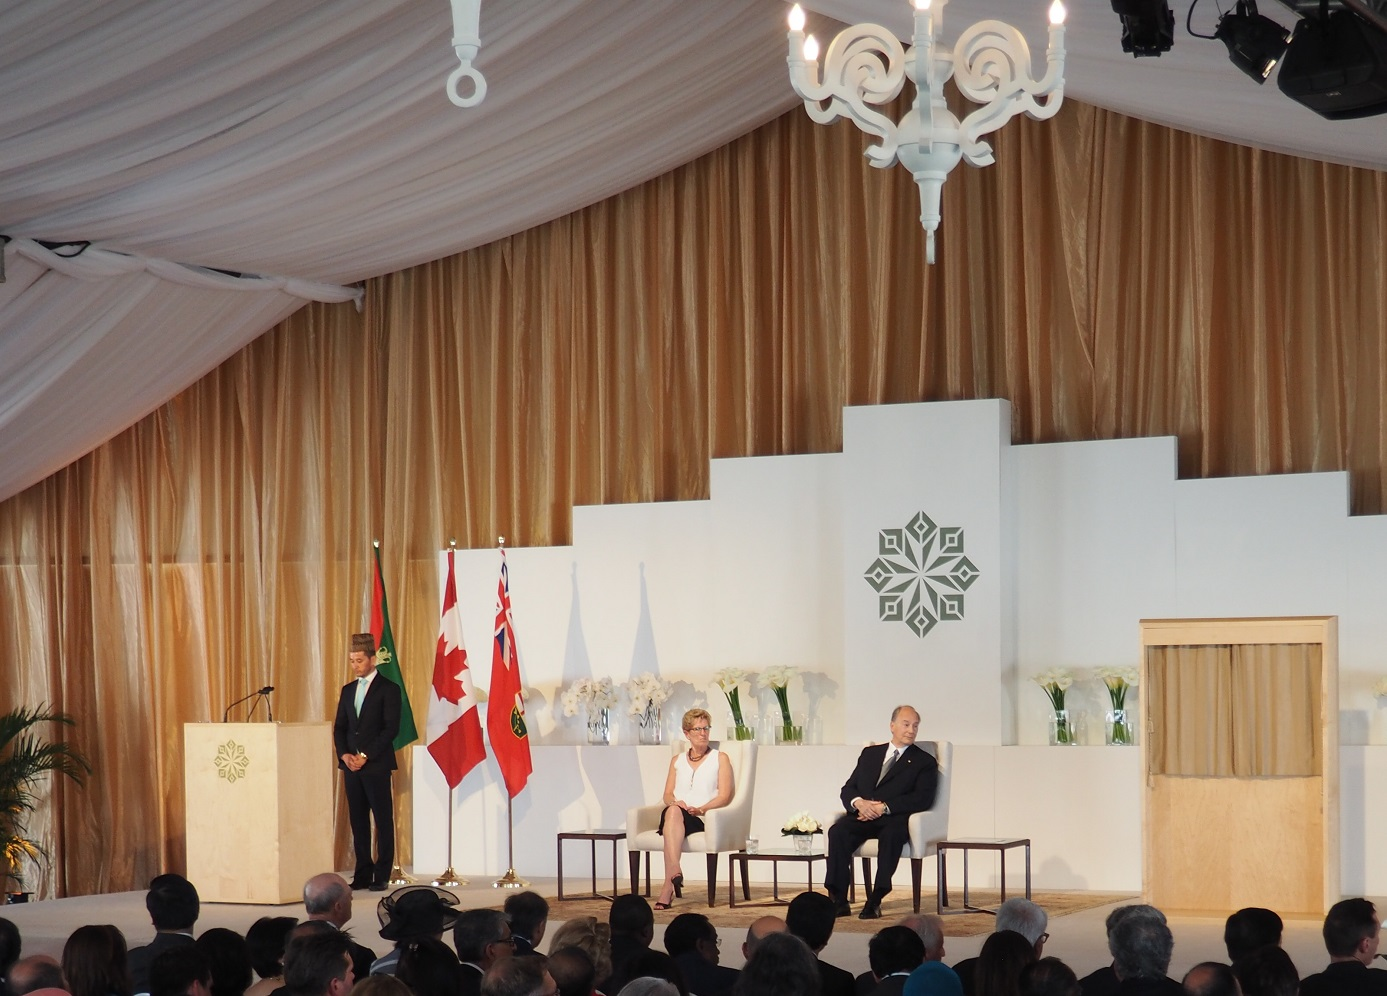 Mawlana Hazar Imam, Premier Kathleen Wynne and the reciter of the Holy Qur'an, Ahsan Afzally, look on as a translation of the Qur'anic verses in English and French is underway during the opening ceremony of the Aga Khan Park on May 25, 2015. Photo: Simerg/Malik Merchant. Copyright.